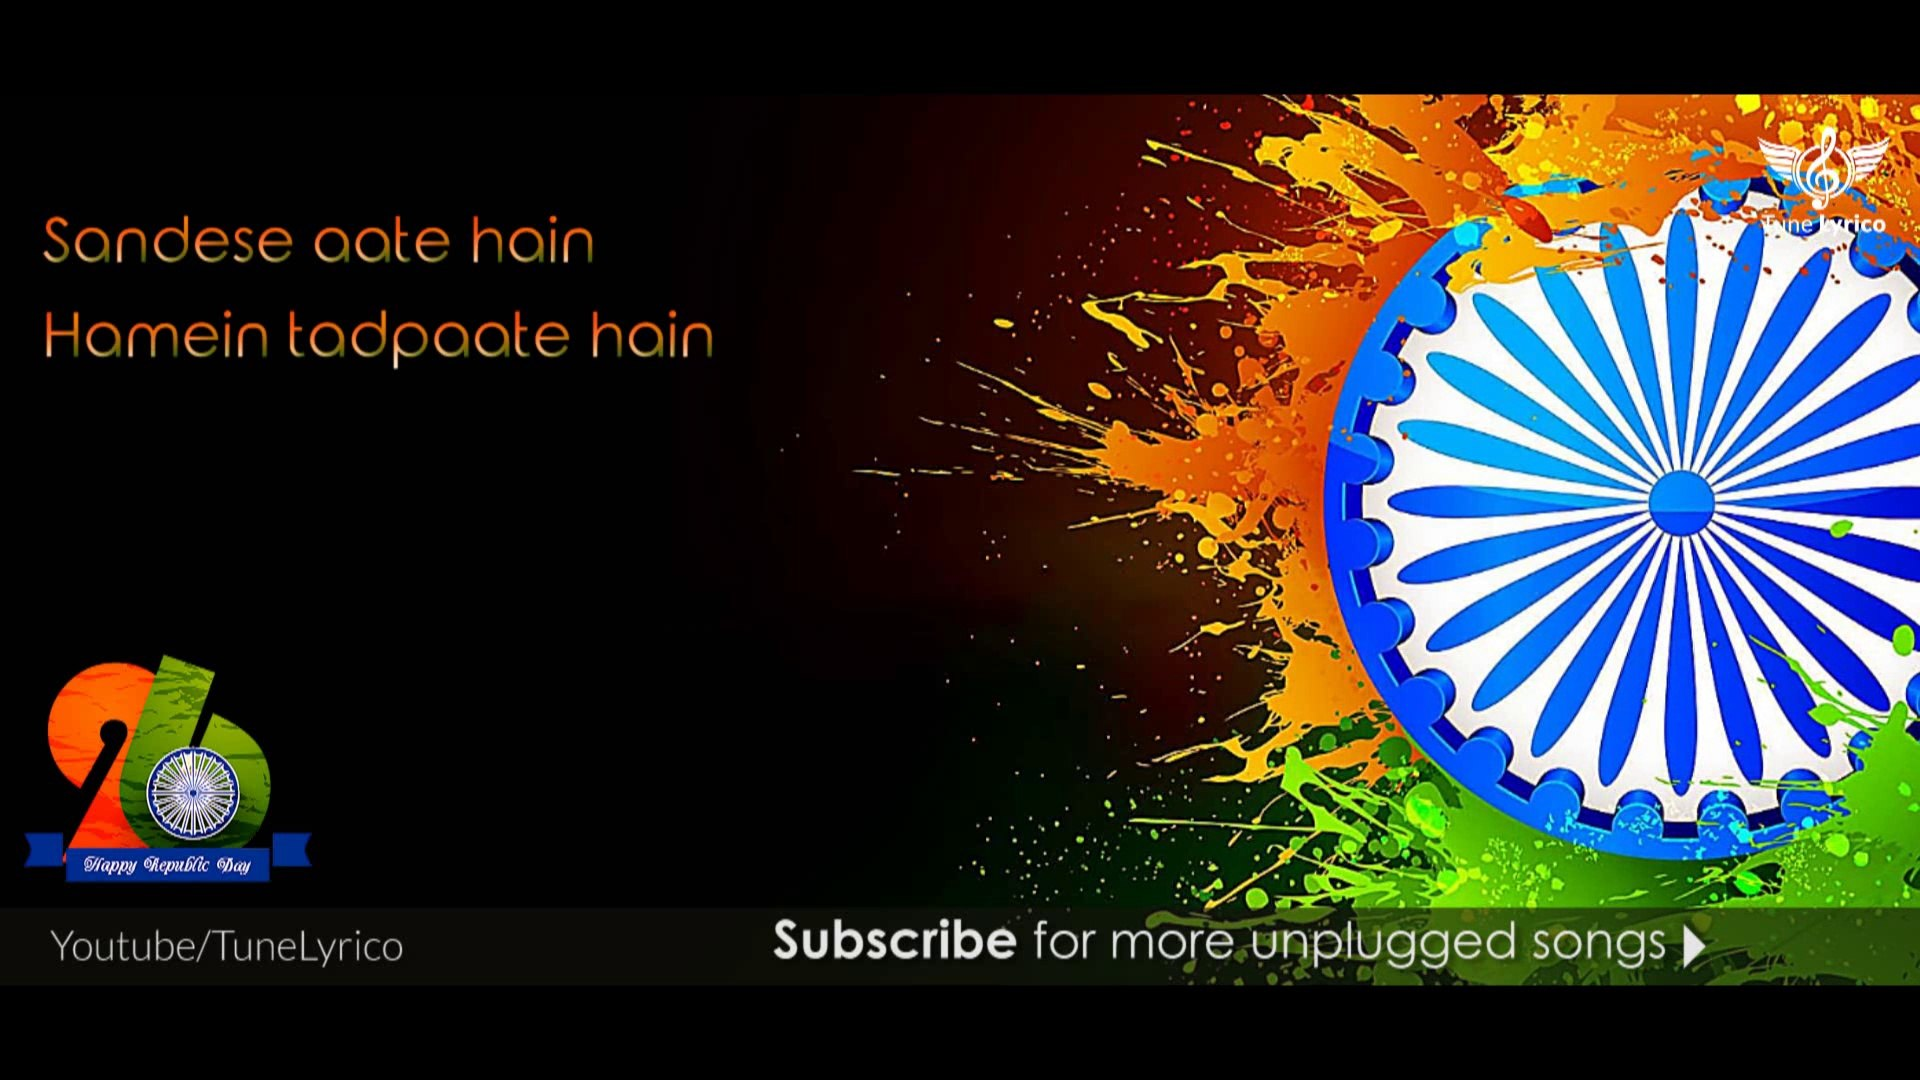 Sandese Aate Hain Full Song   Unplugged Cover   REPUBLIC DAY SPECIAL    Mrinali Gulati   Tune Lyrico